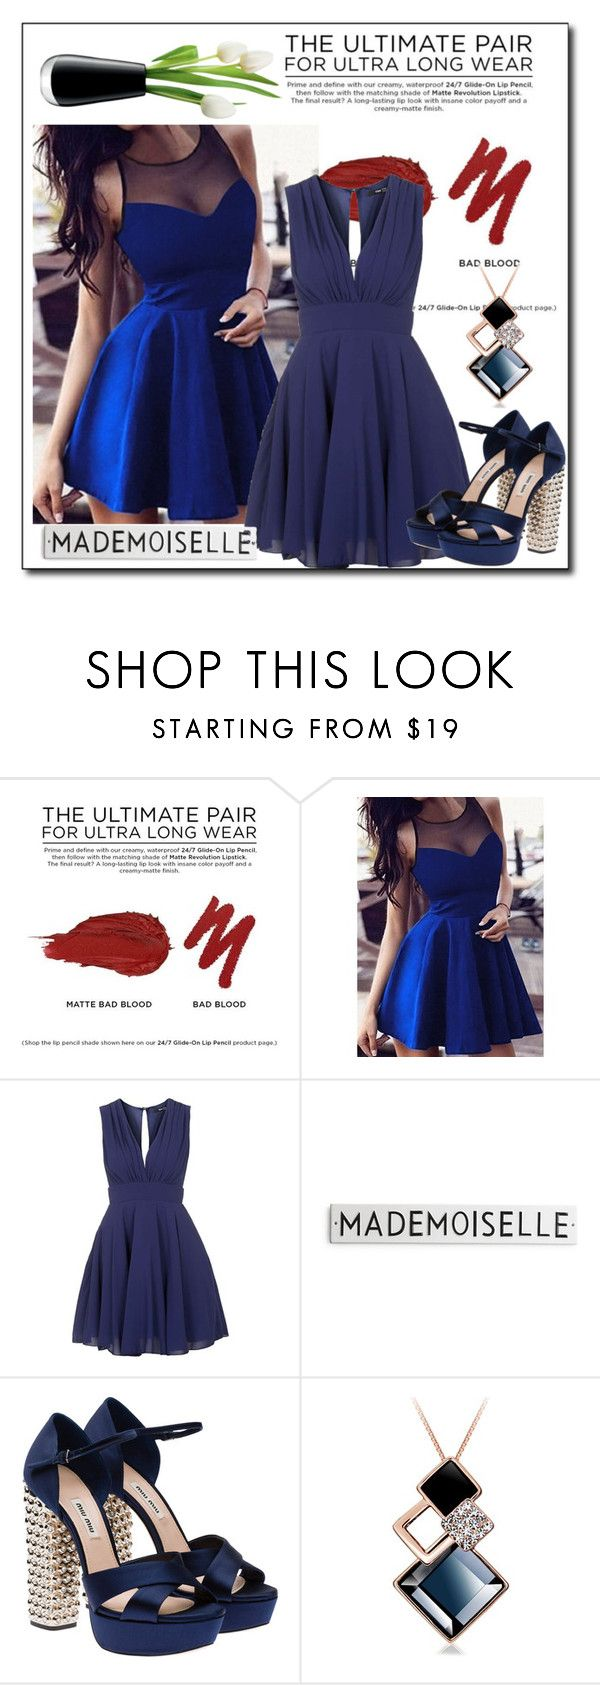 """""""lady in blue dresses"""" by ainzme ❤ liked on Polyvore featuring Urban Decay, TFNC, Miu Miu and LSA International"""